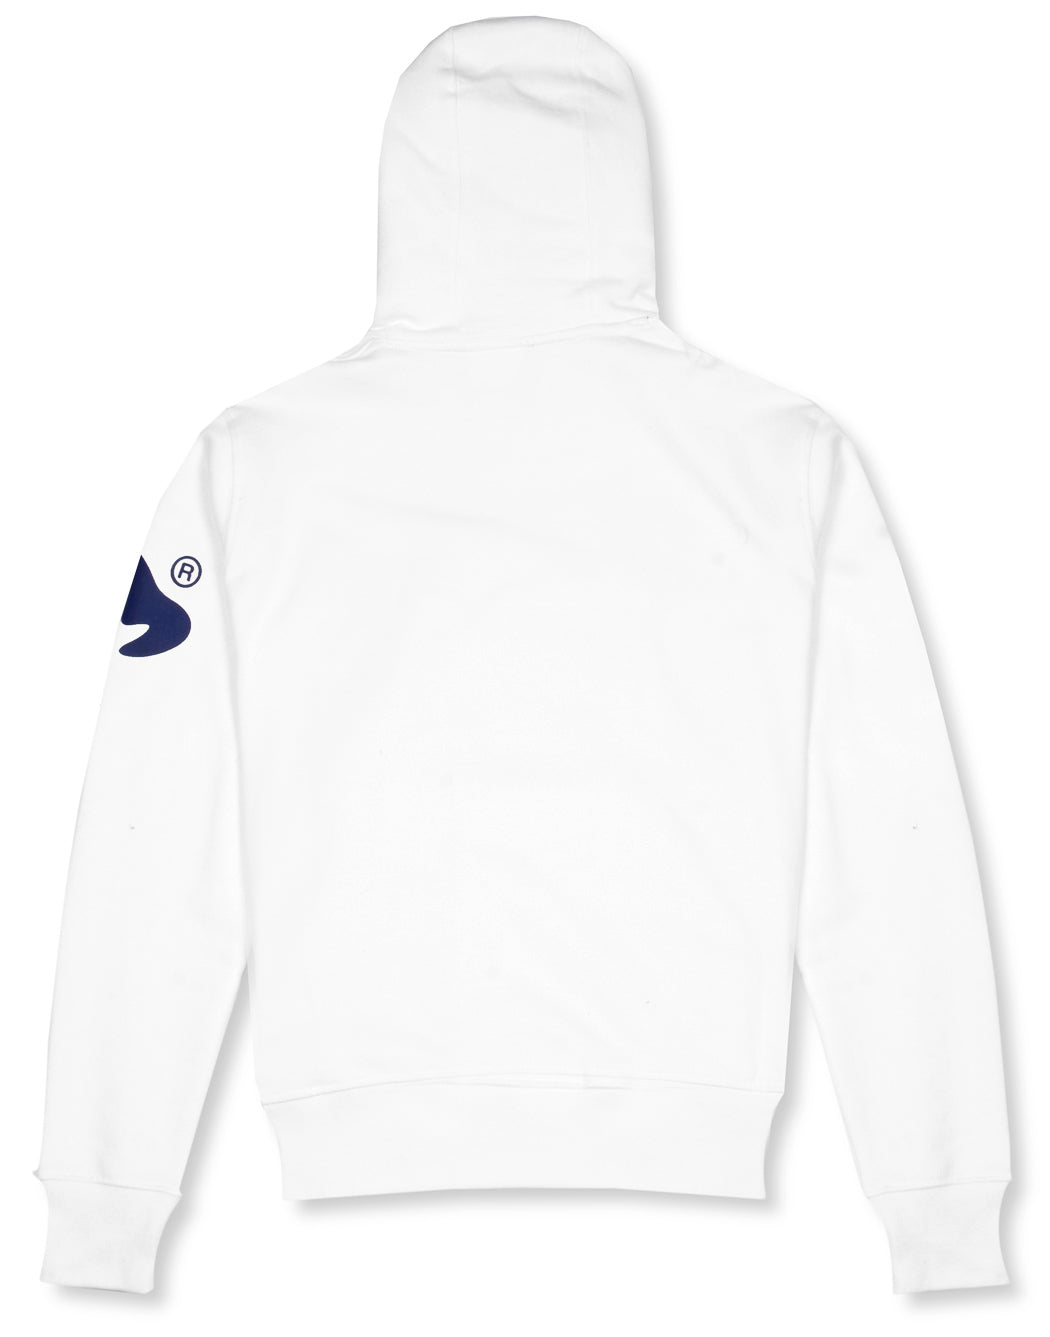 Money Clothing signature logo hoodie in white